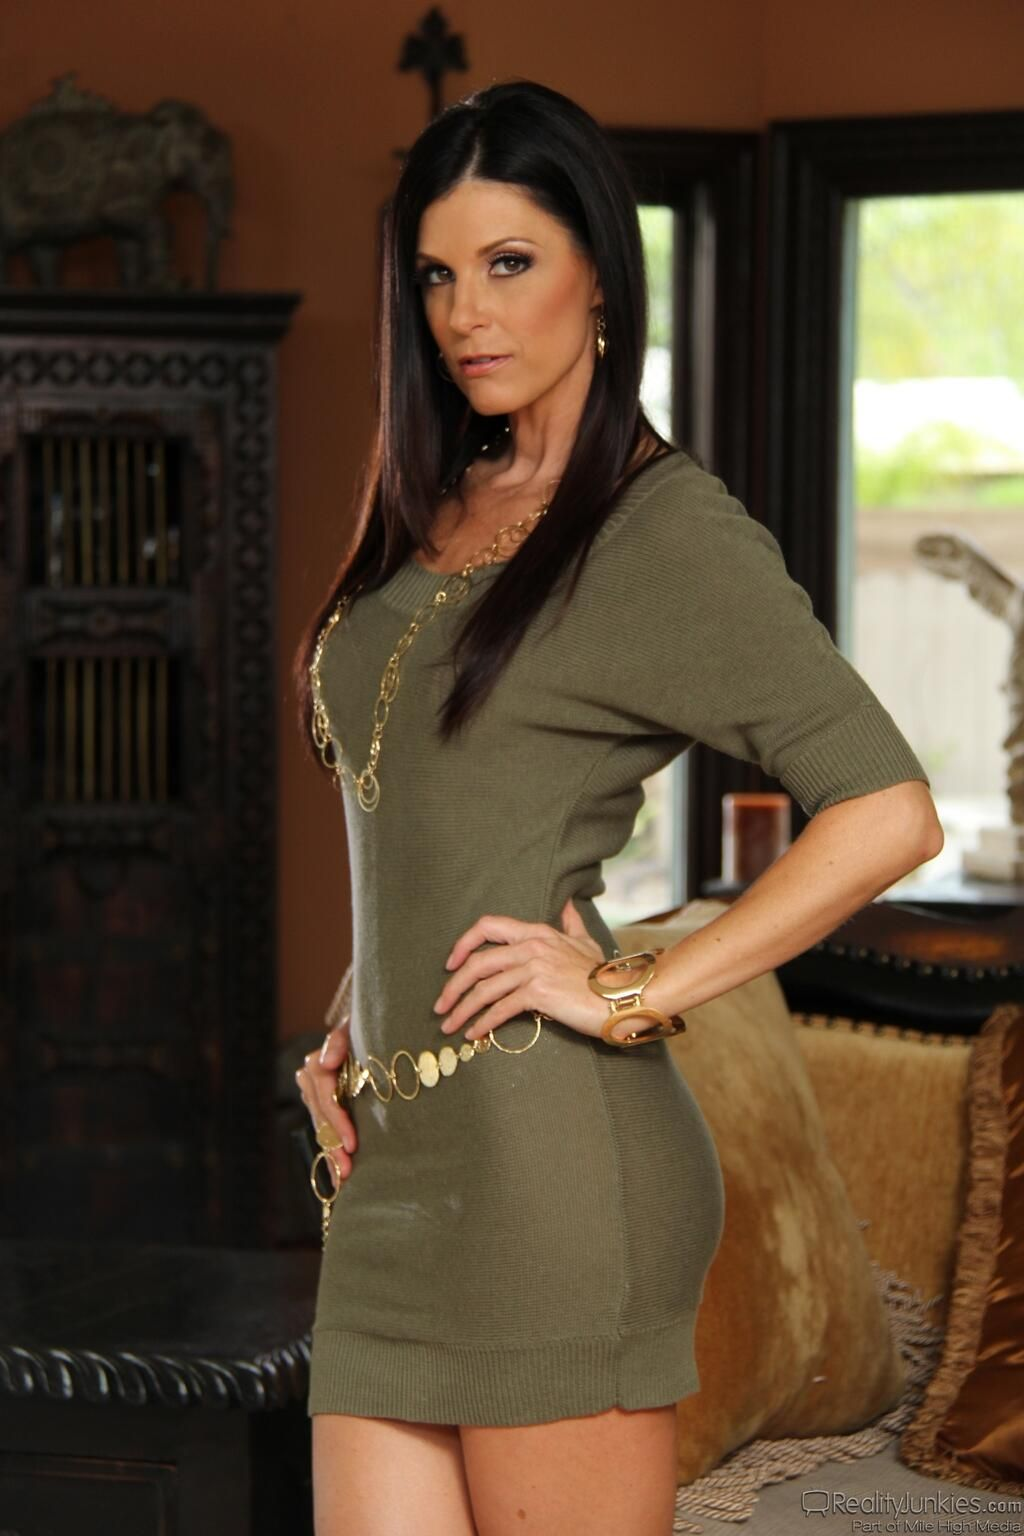 India Summer Porn Complete cool : india summer { love } | india summer | pinterest | india